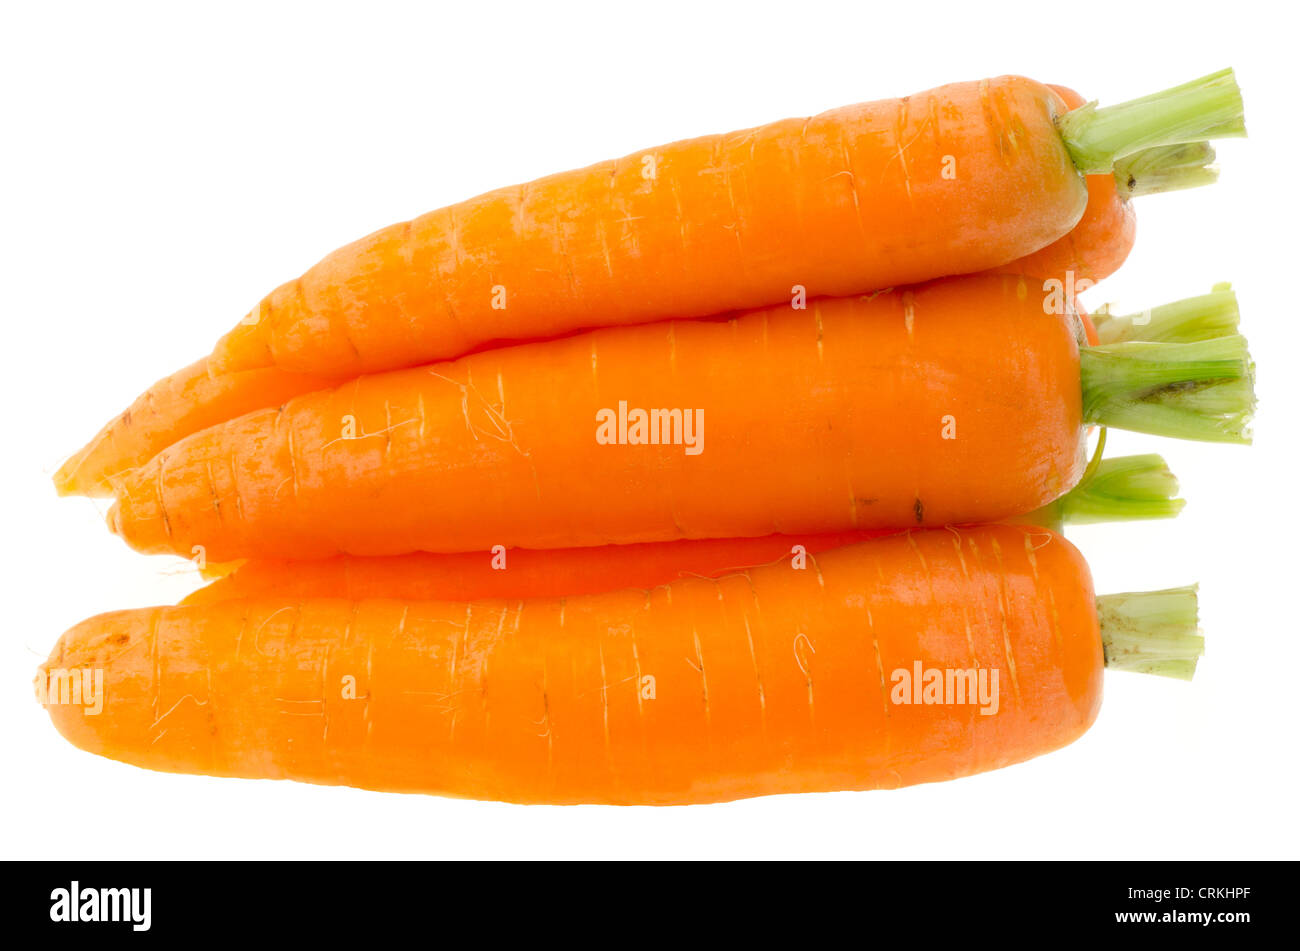 Fresh ripe carrots - studio shot with a white background - Stock Image